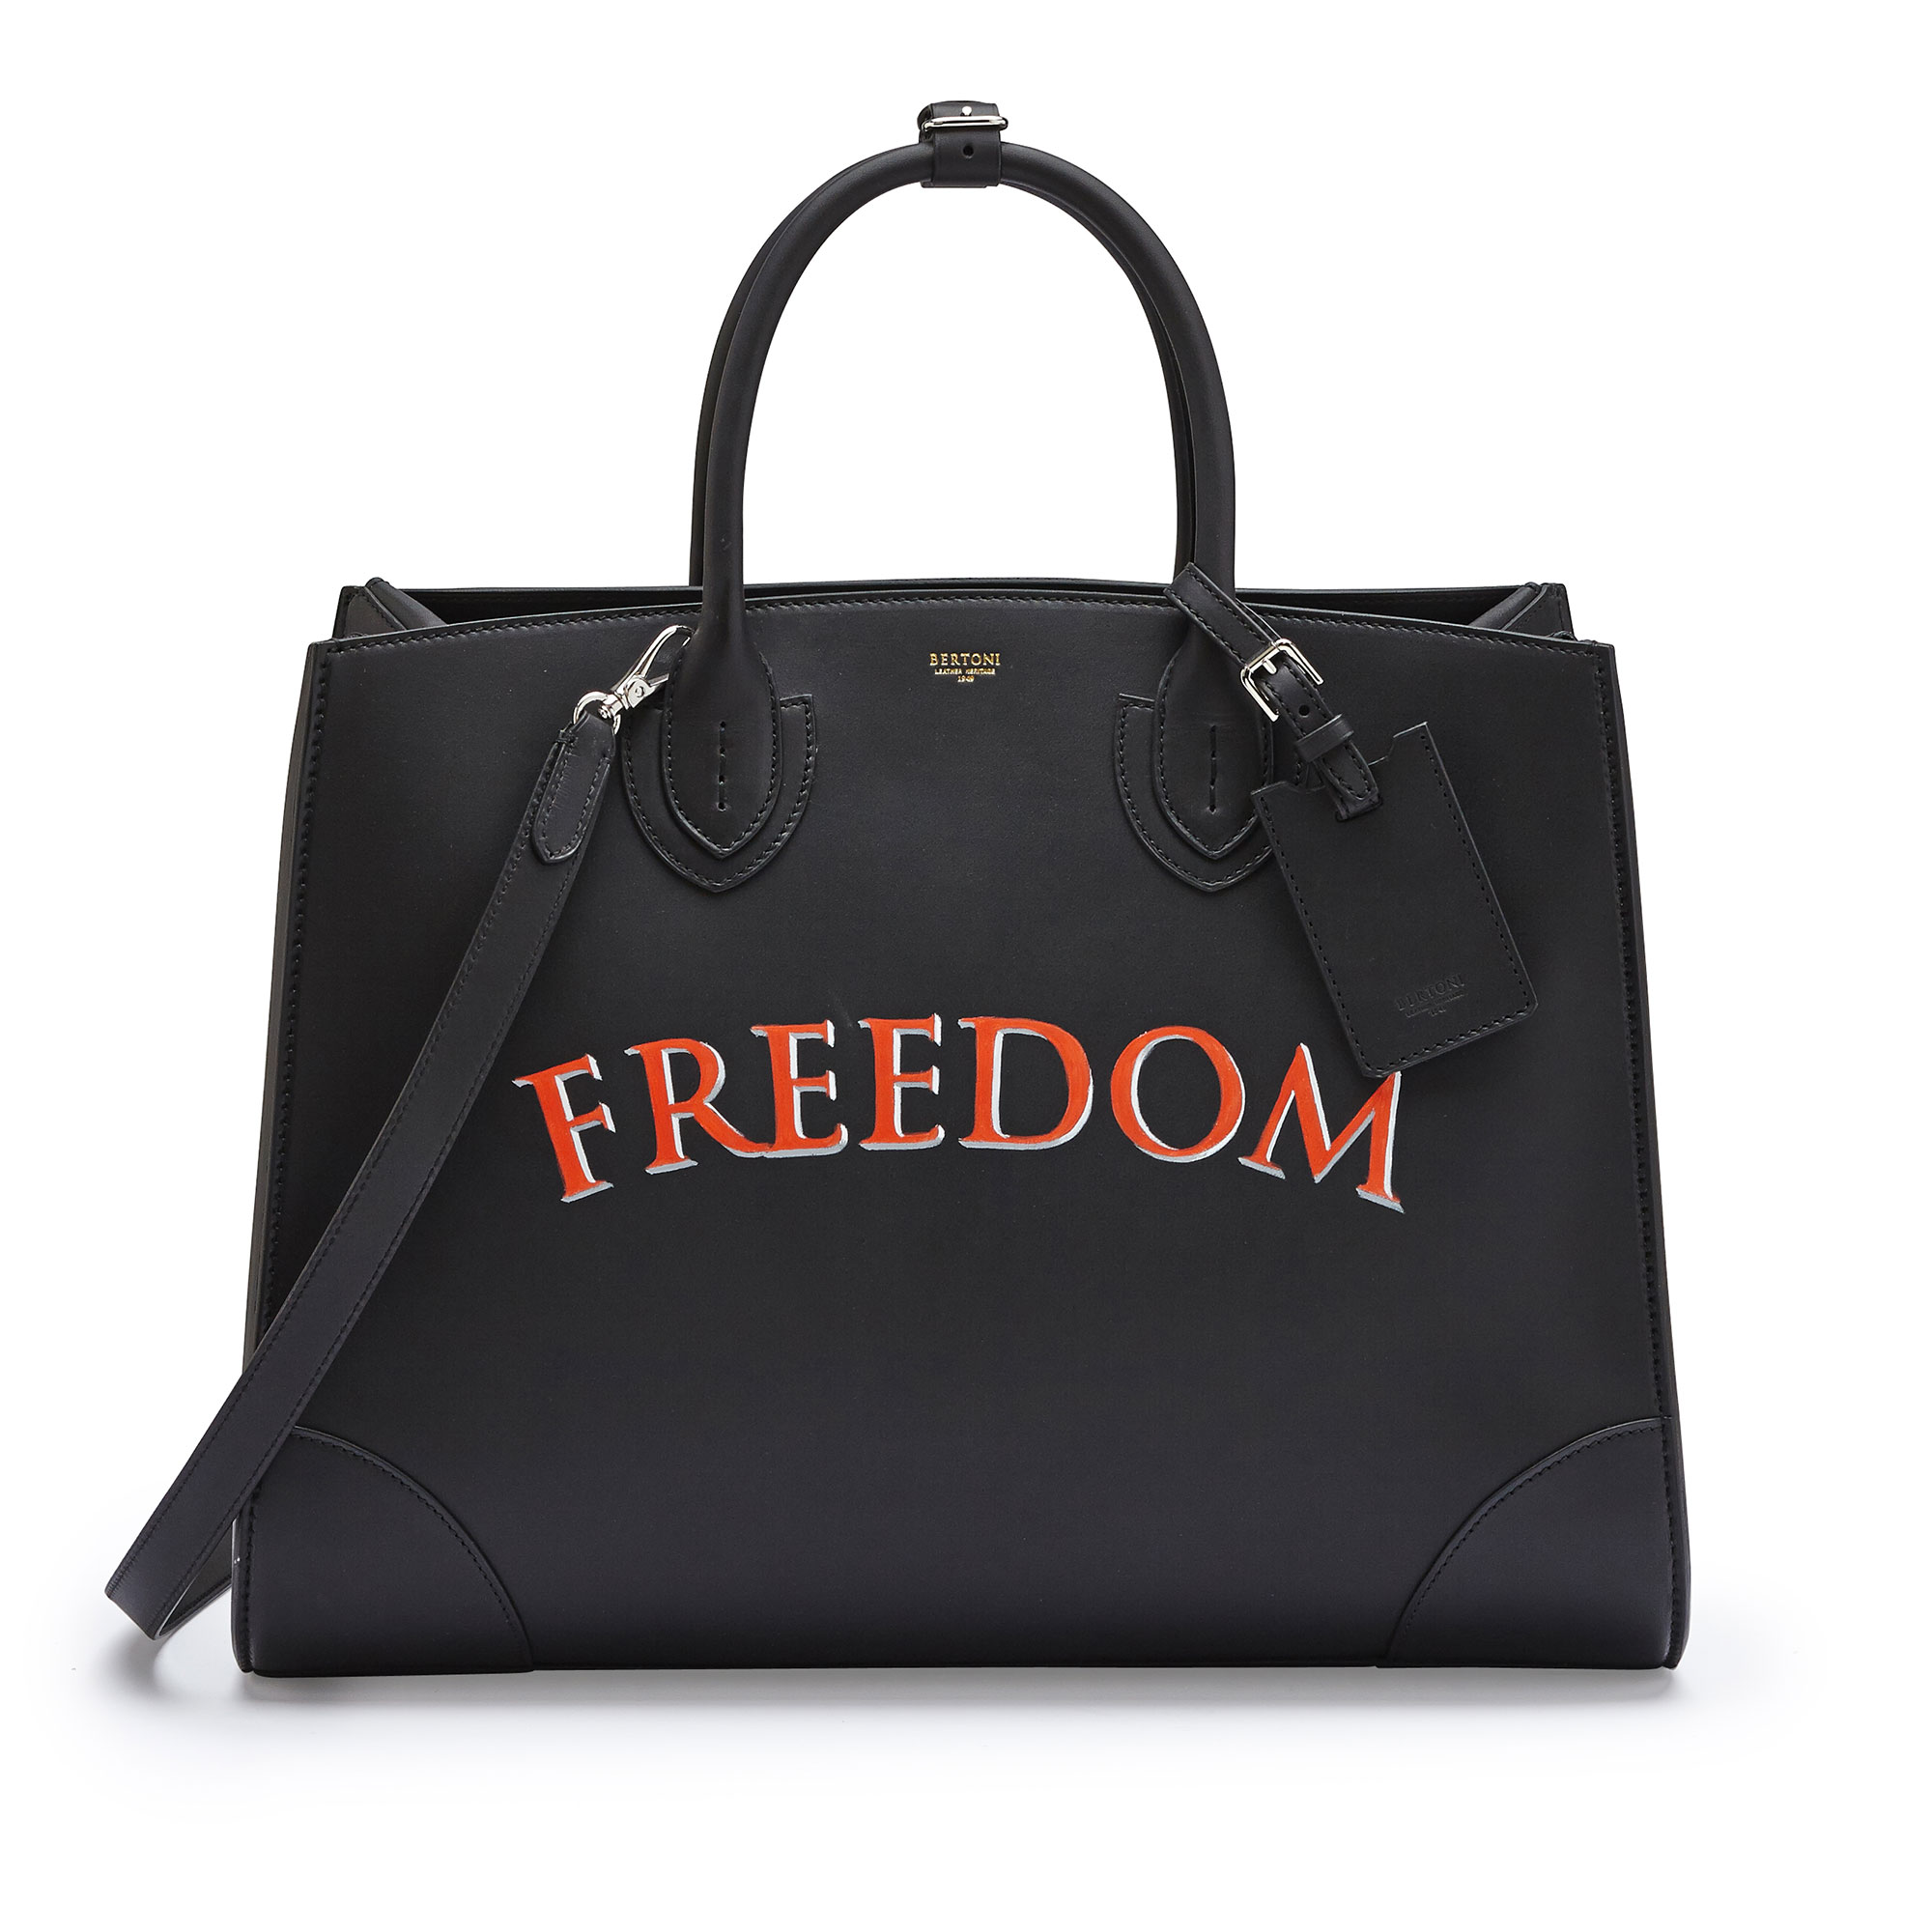 The black with write freedom french calf Maxi Darcy bag by Bertoni 1949 01